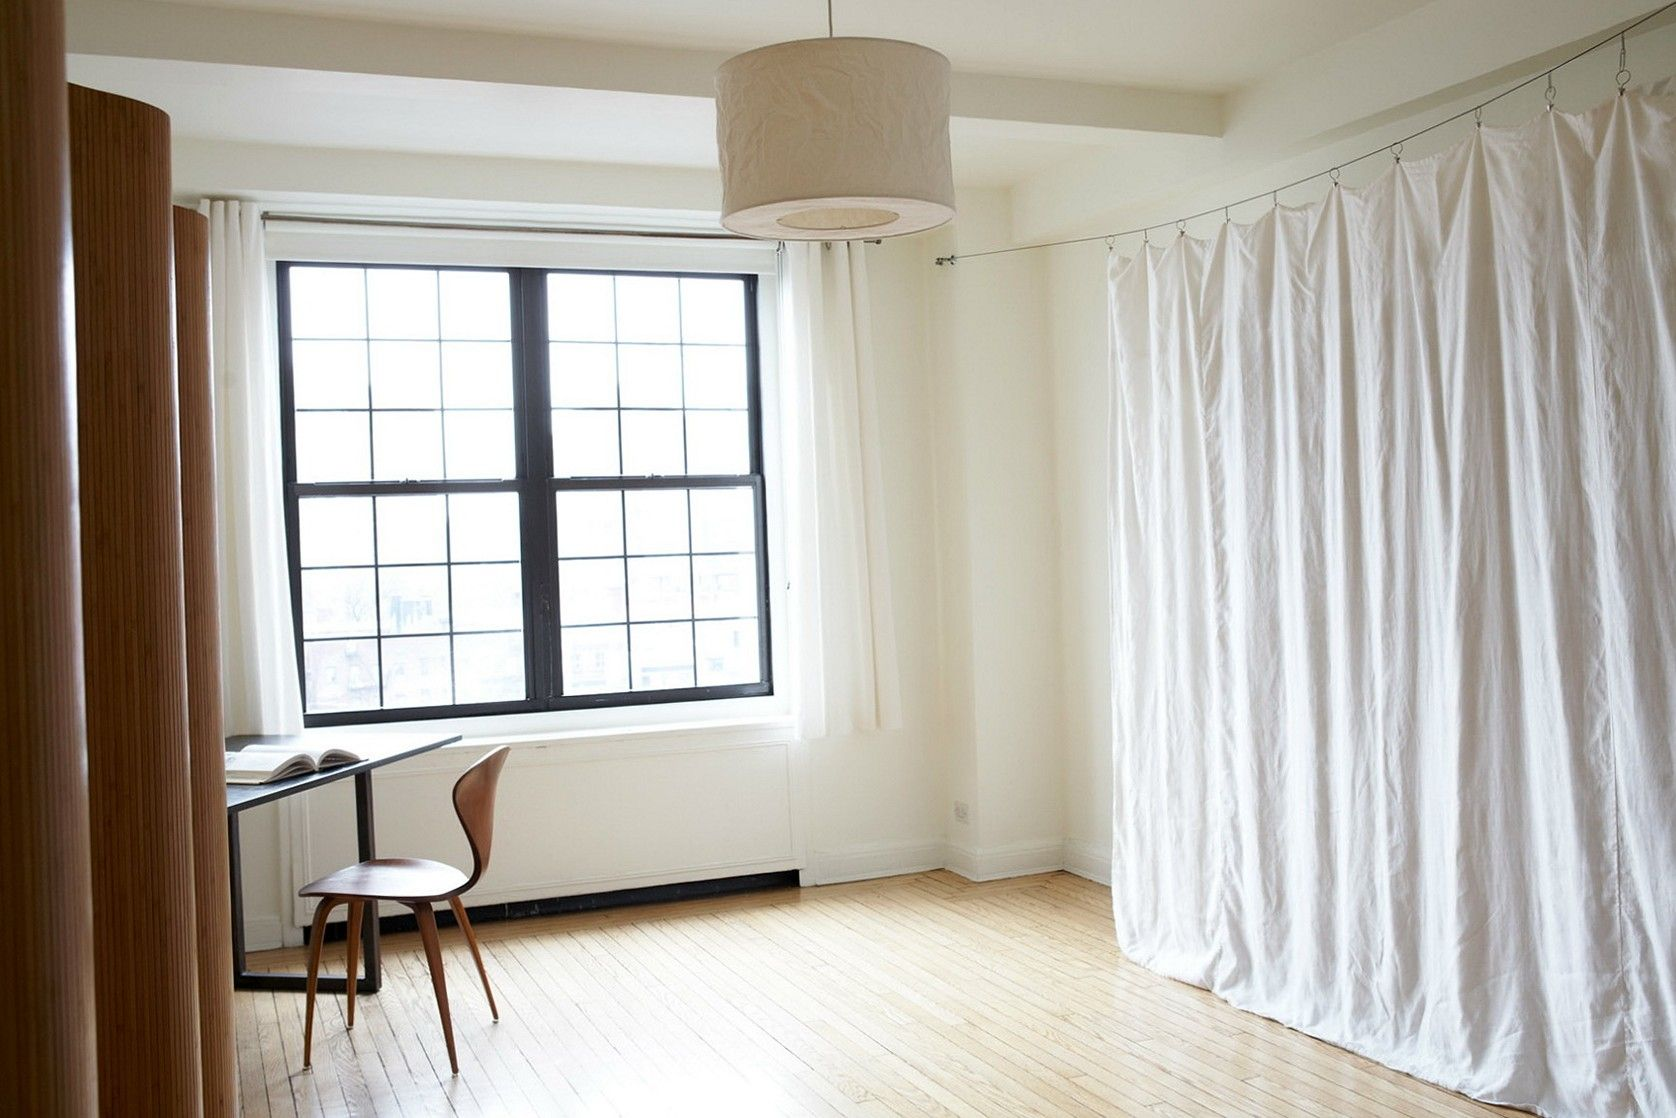 DIY Room Divider Curtain Cheap Office Ideas Pinterest Room